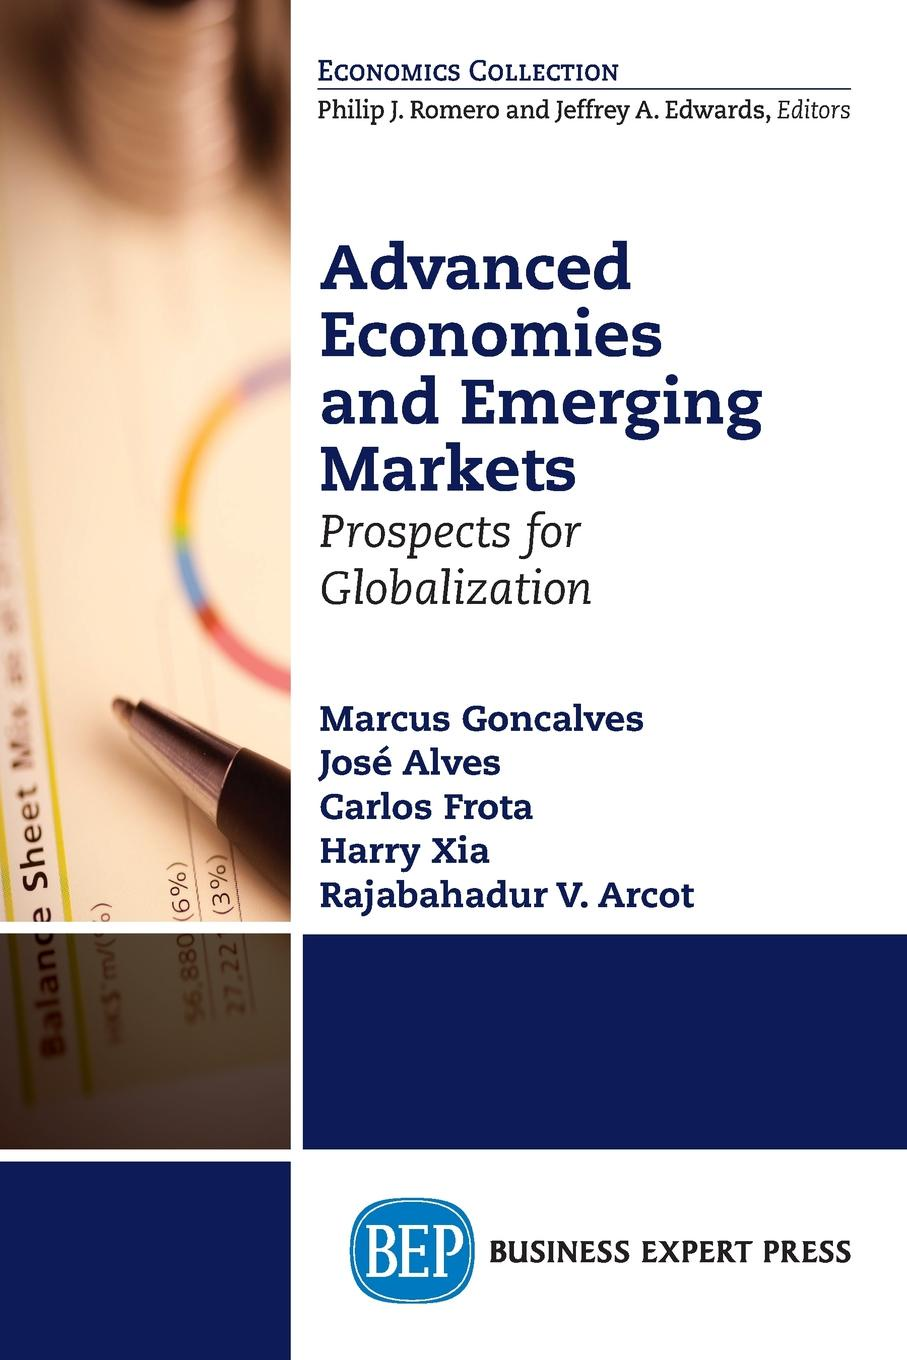 Marcus Goncalves, José Alves, Carlos Frota Advanced Economies and Emerging Markets. Prospects for Globalization halil kiymaz market microstructure in emerging and developed markets price discovery information flows and transaction costs